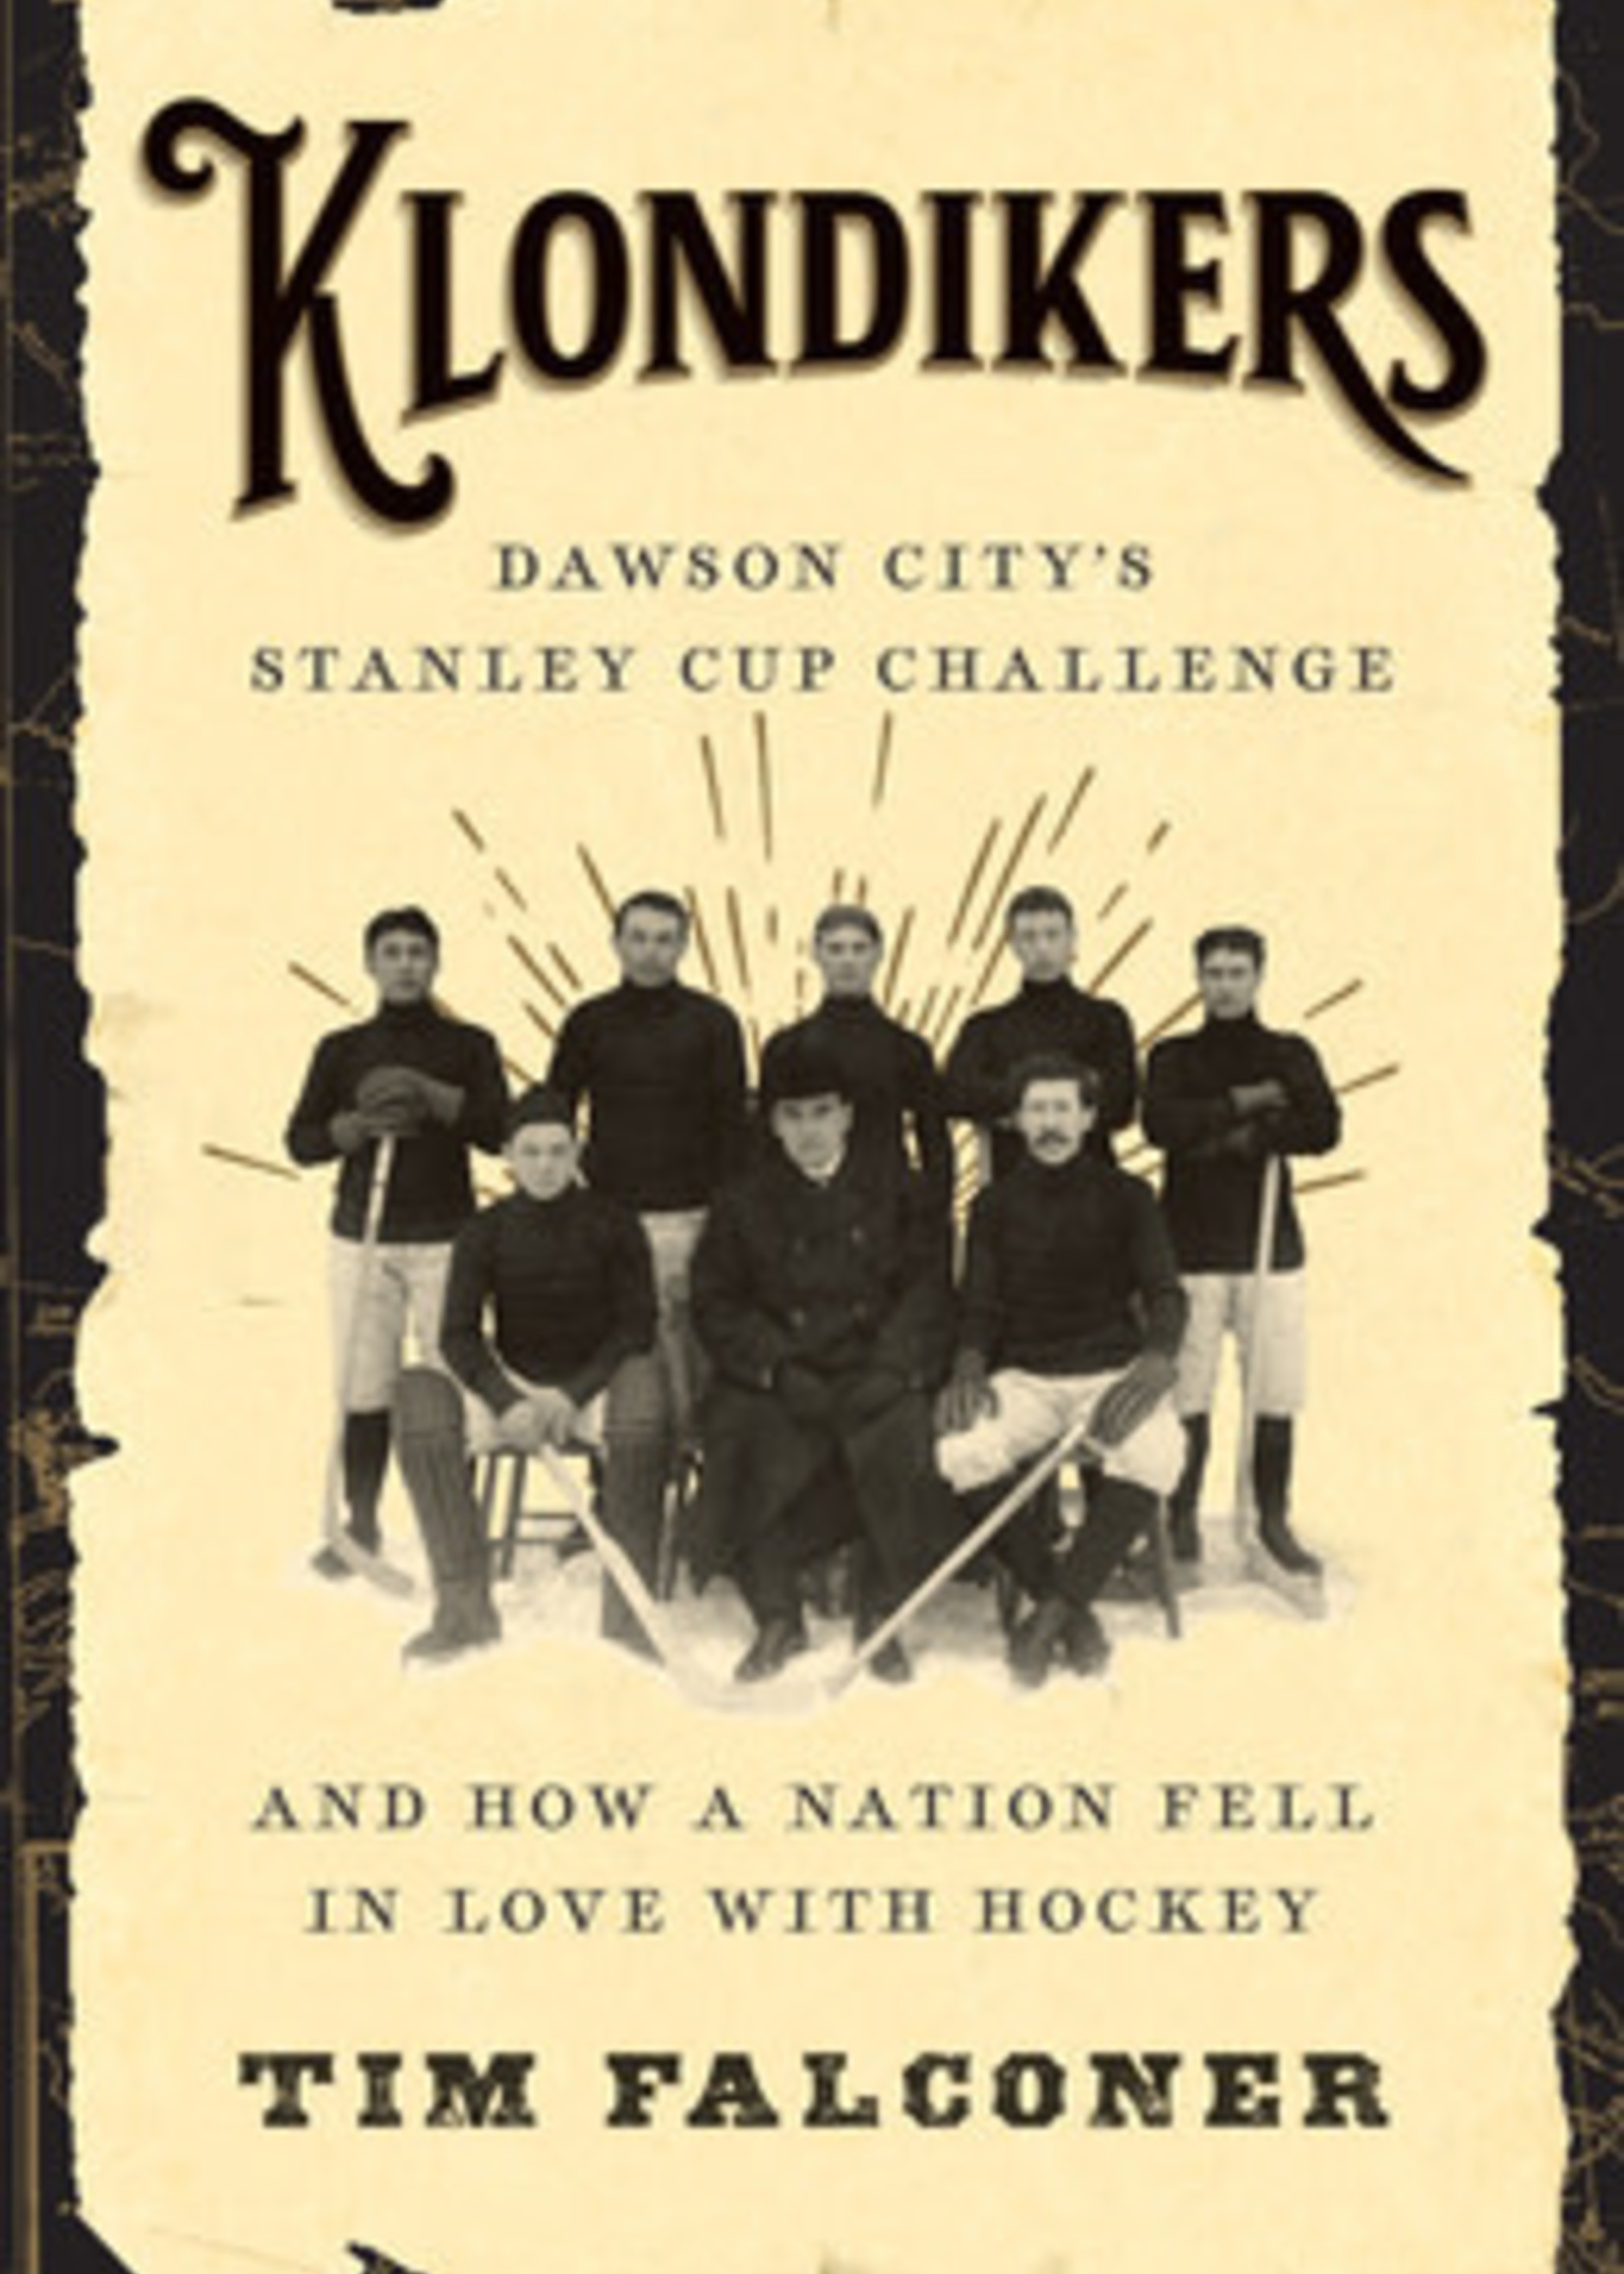 Klondikers: Dawson City's Stanley Cup Challenge and How a Nation Fell in Love with Hockey by Tim Falconer